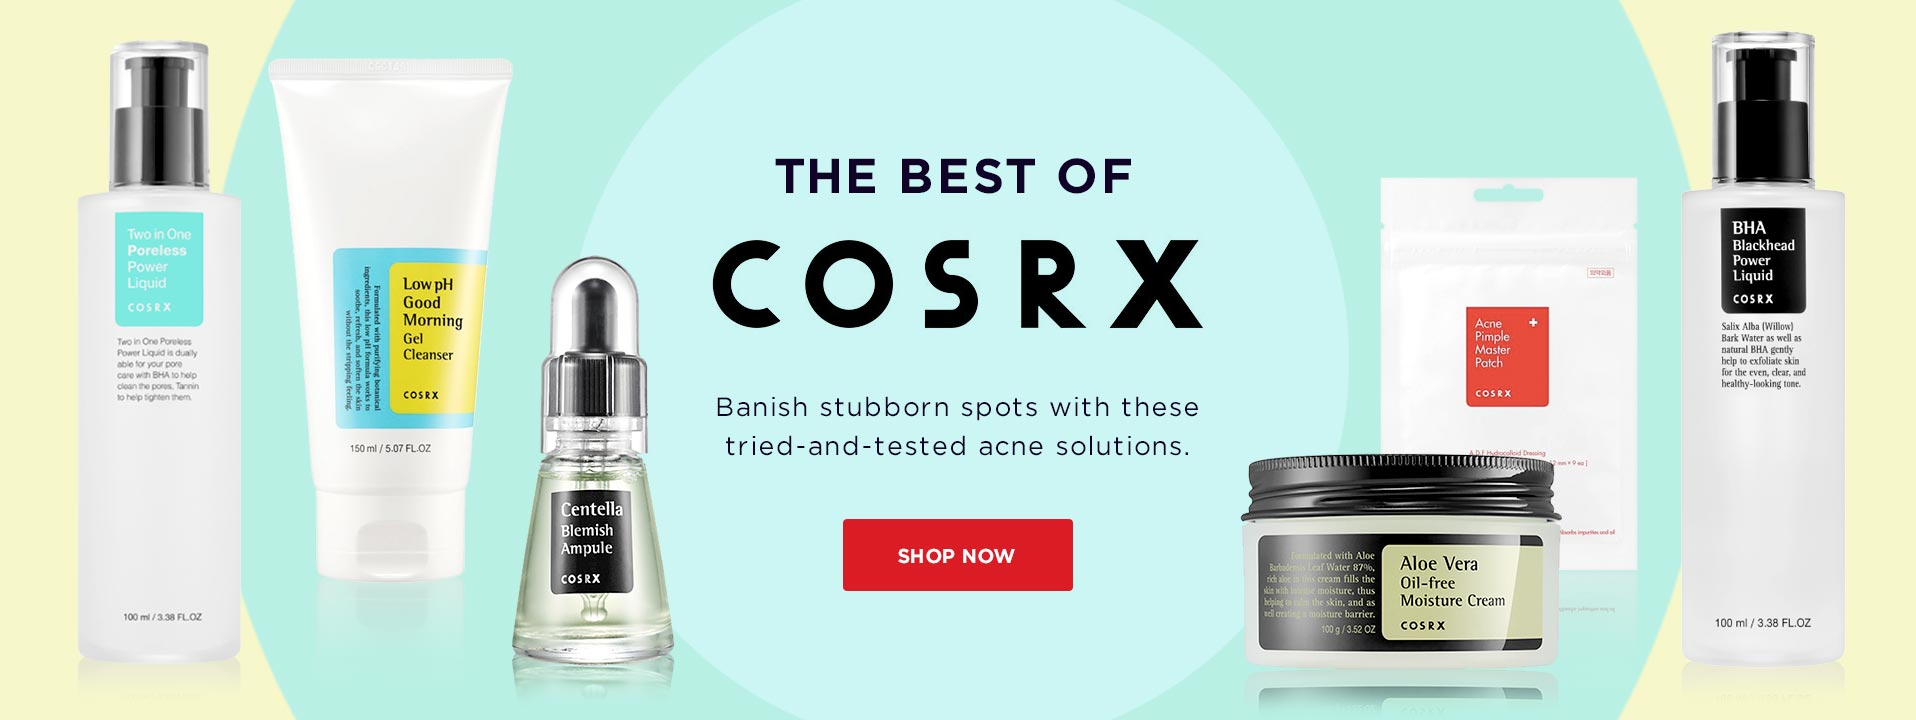 The Best of COSRX. Banish stubborn spots with these tried-and-tested acne solutions.